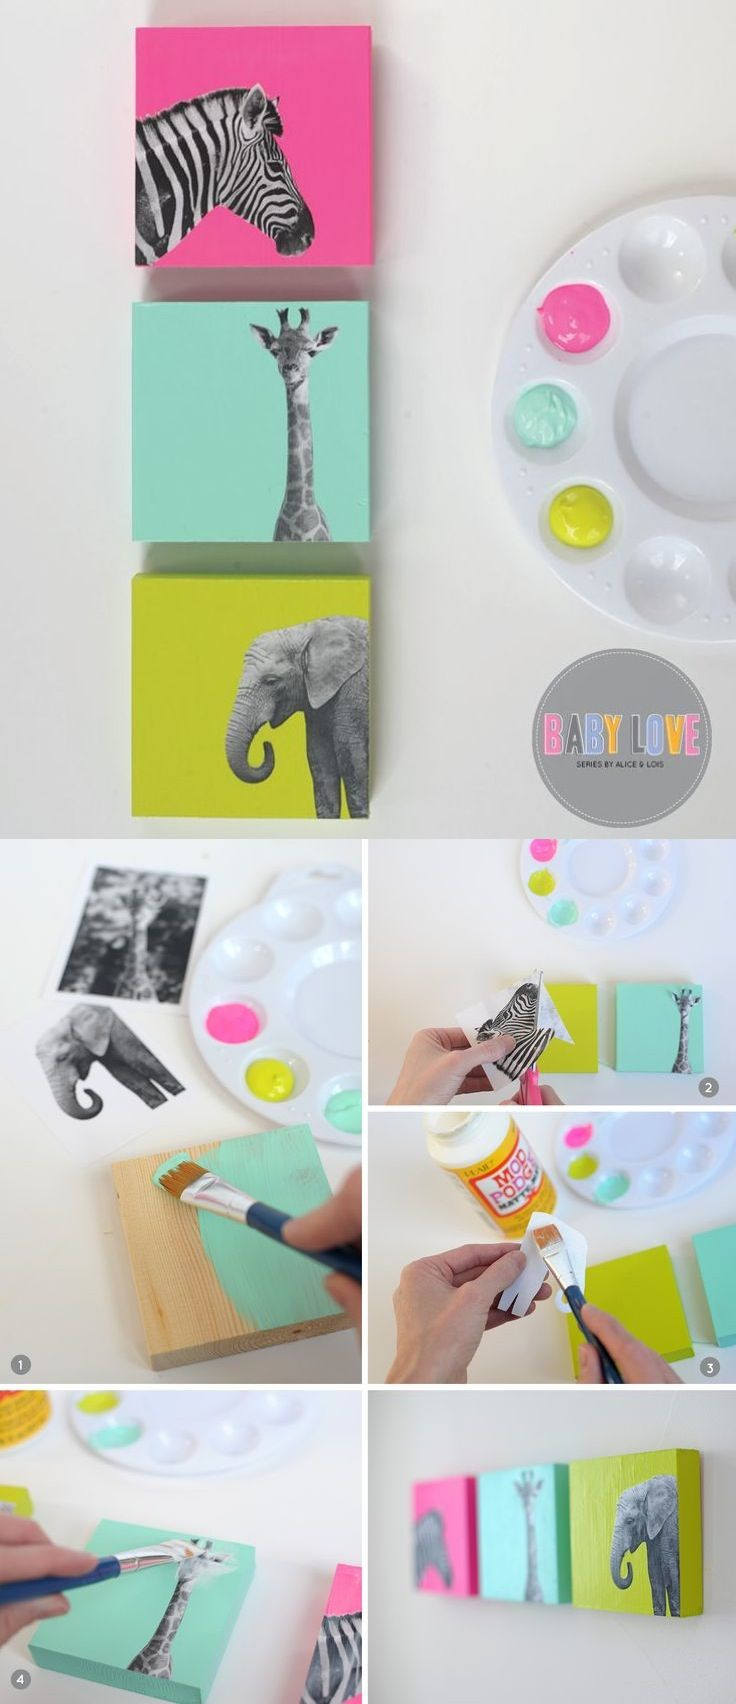 6 CUTE DIY PROJECTS FOR KIDS